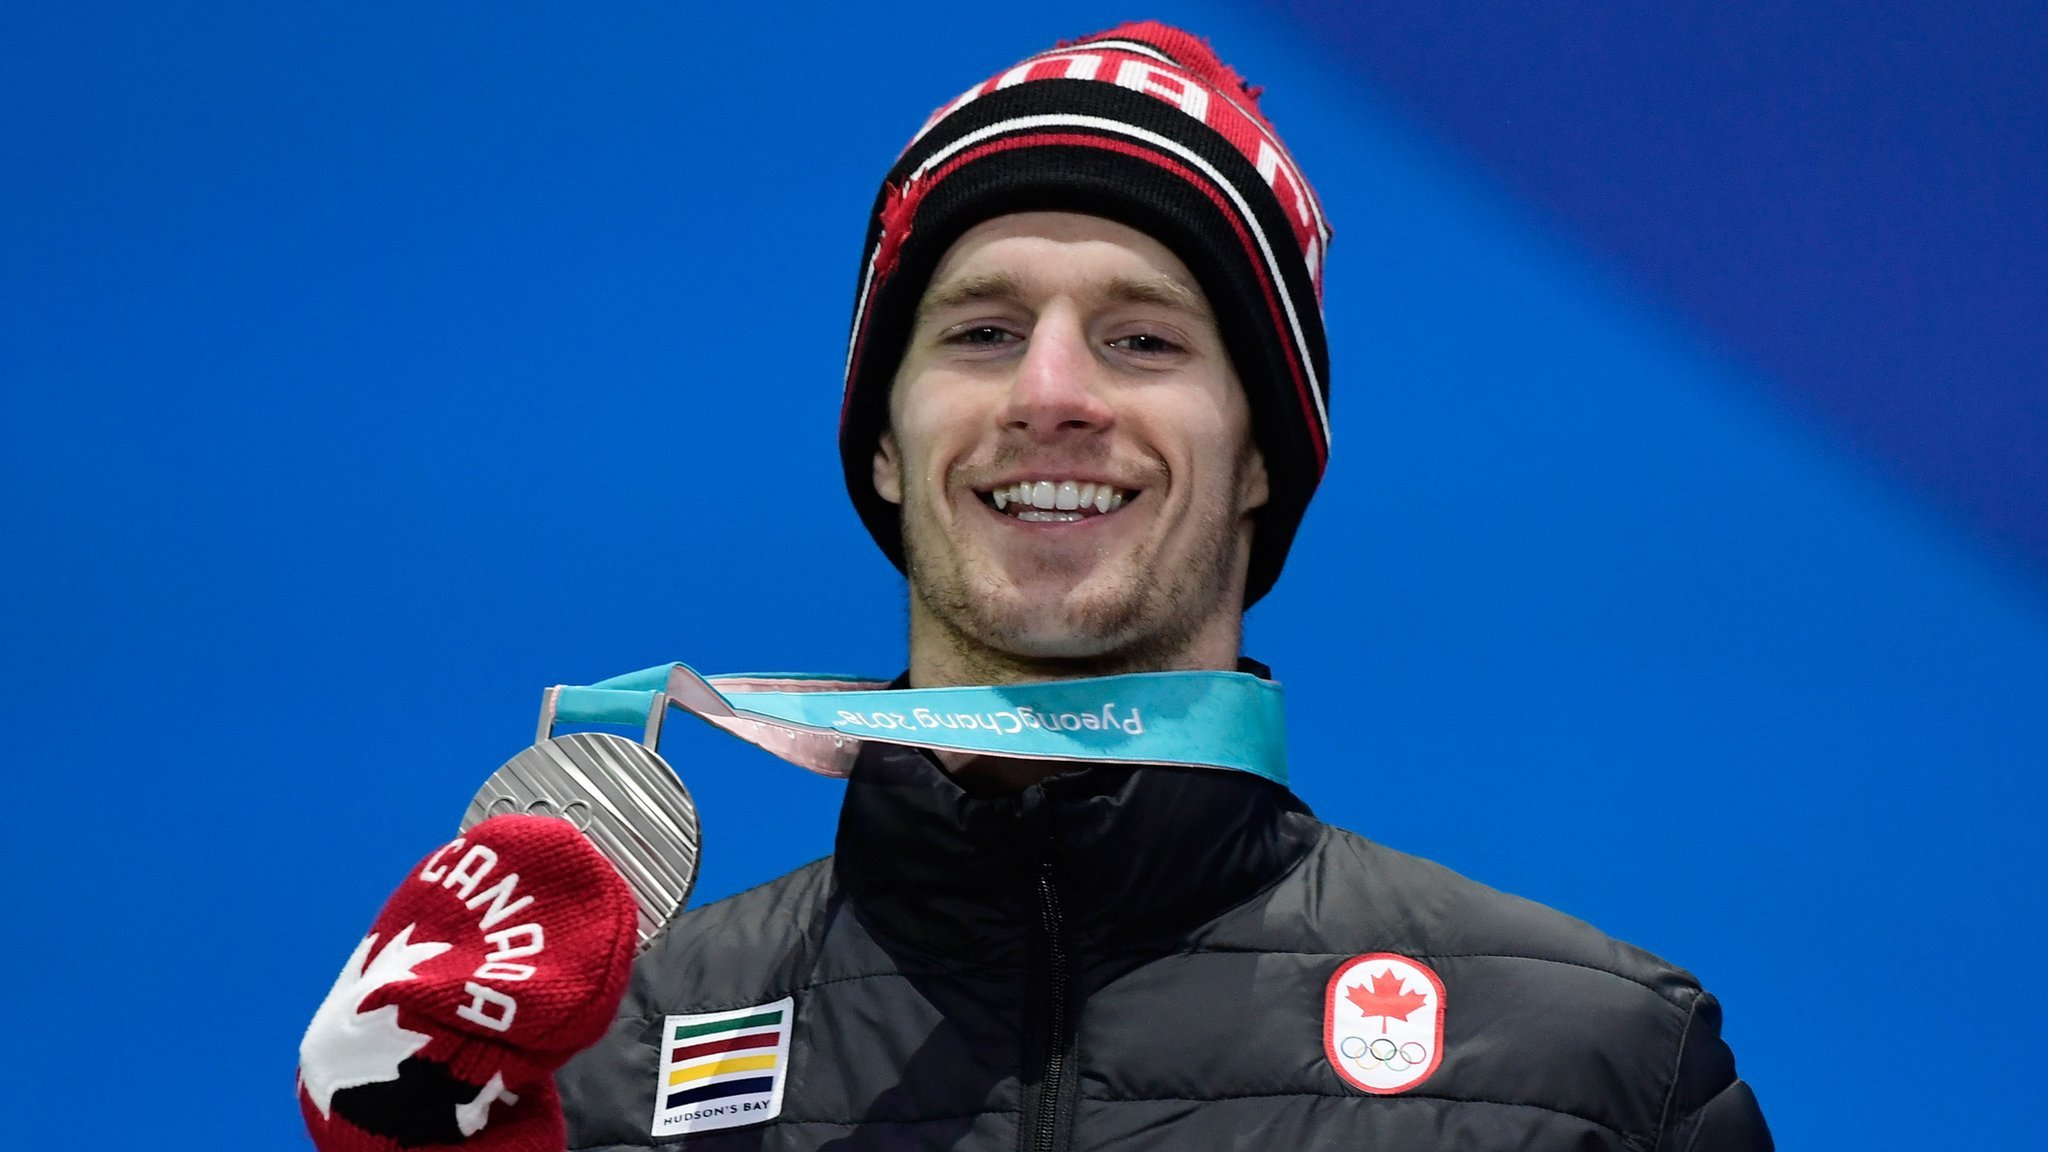 Max Parrot: Canadian Olympic snowboarder diagnosed with Hodgkin lymphoma